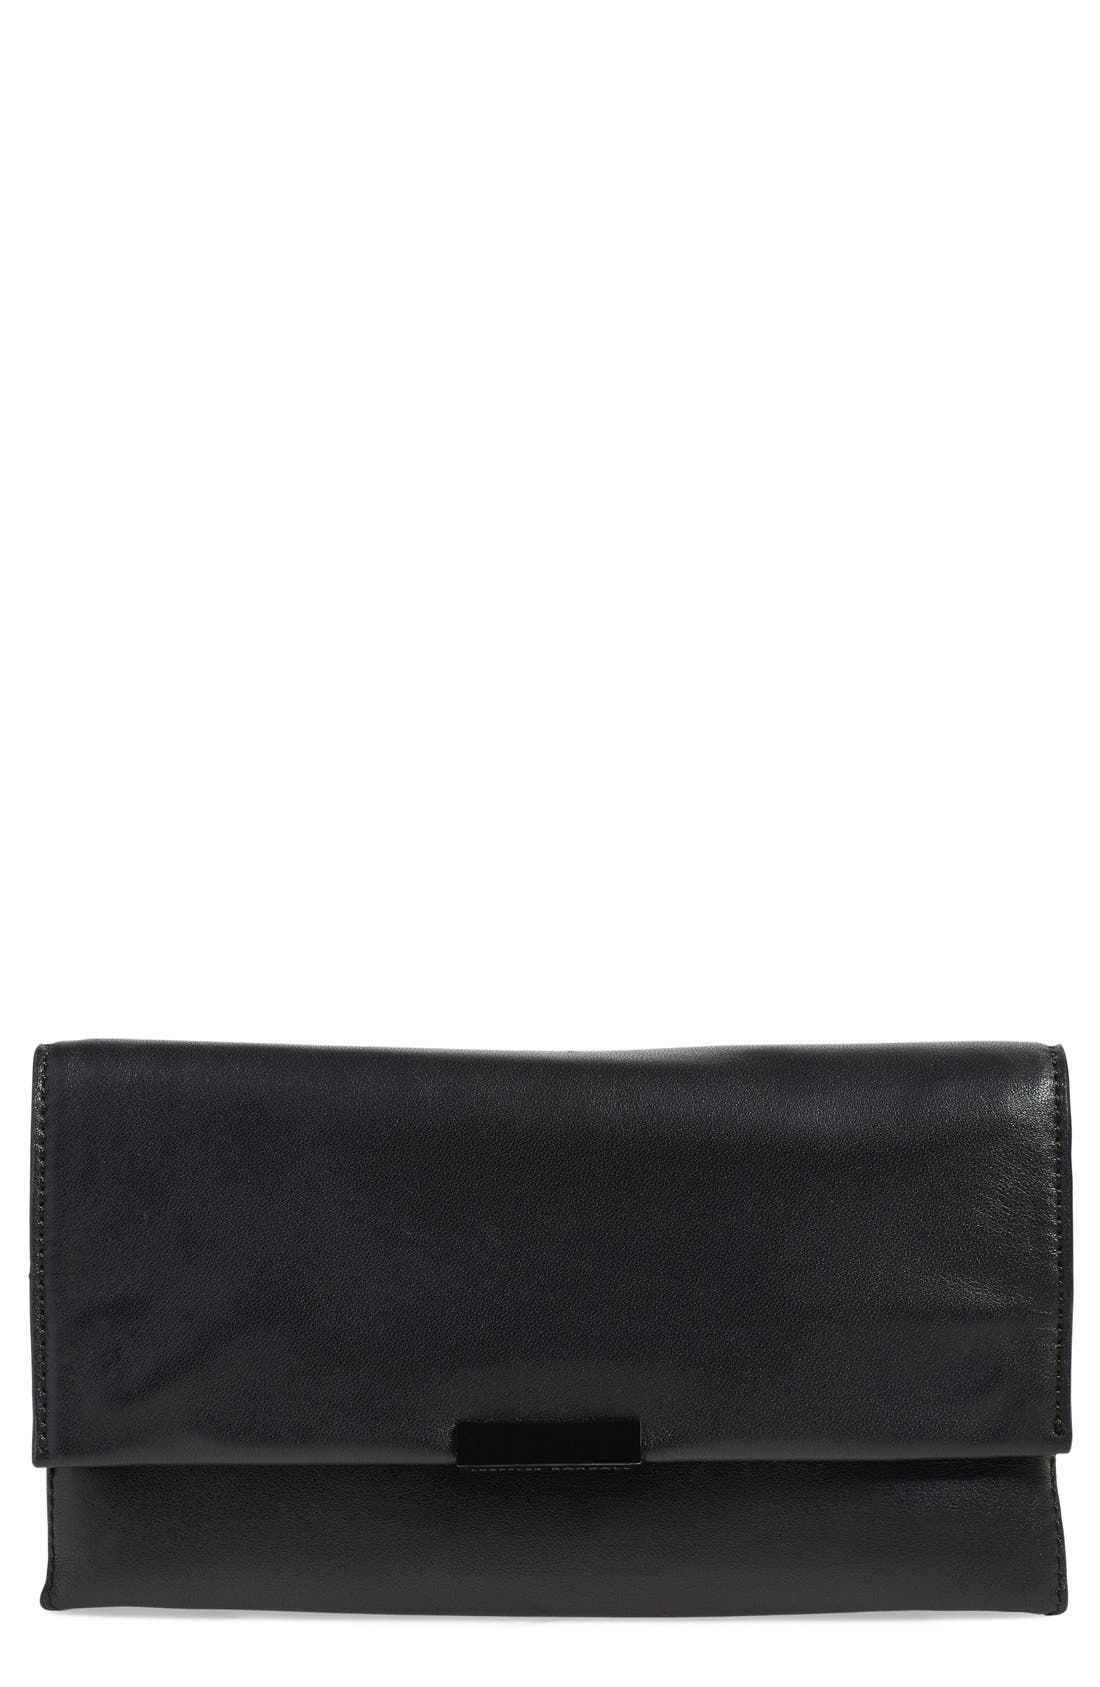 Leather Accordion Clutch,                             Main thumbnail 1, color,                             001